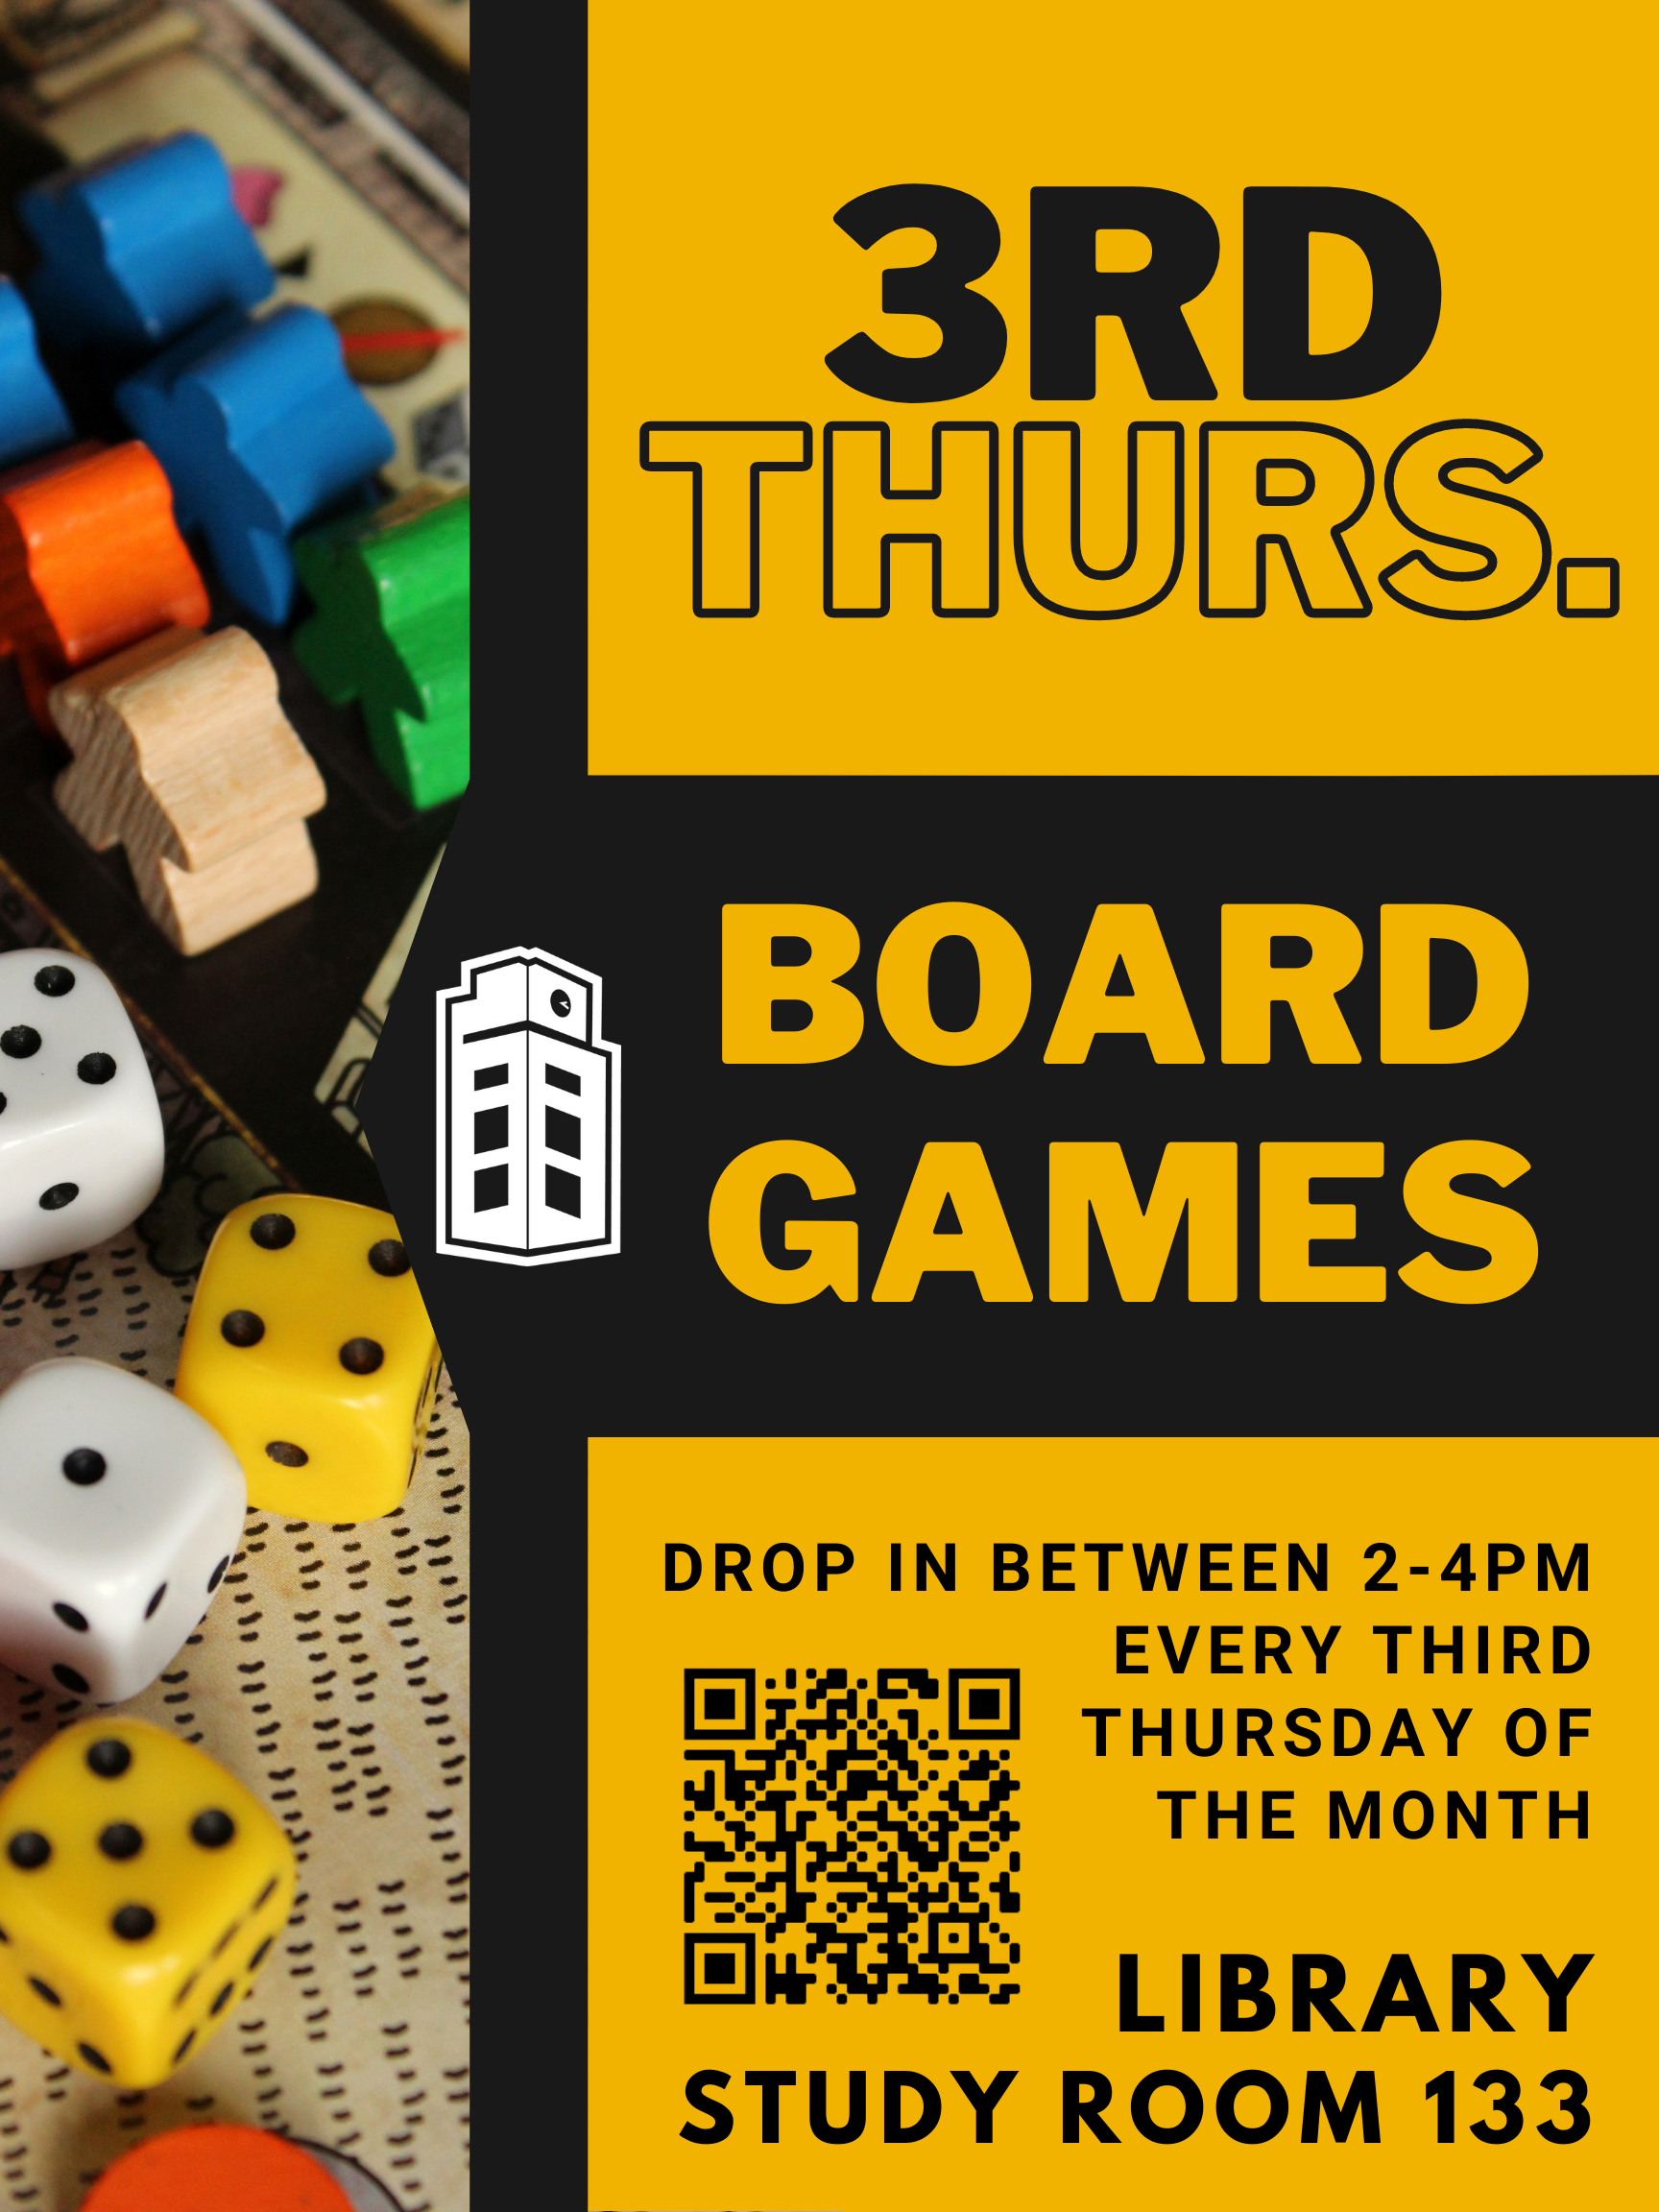 Third Thursday Board Games, 2-4pm, Library Study Room 133